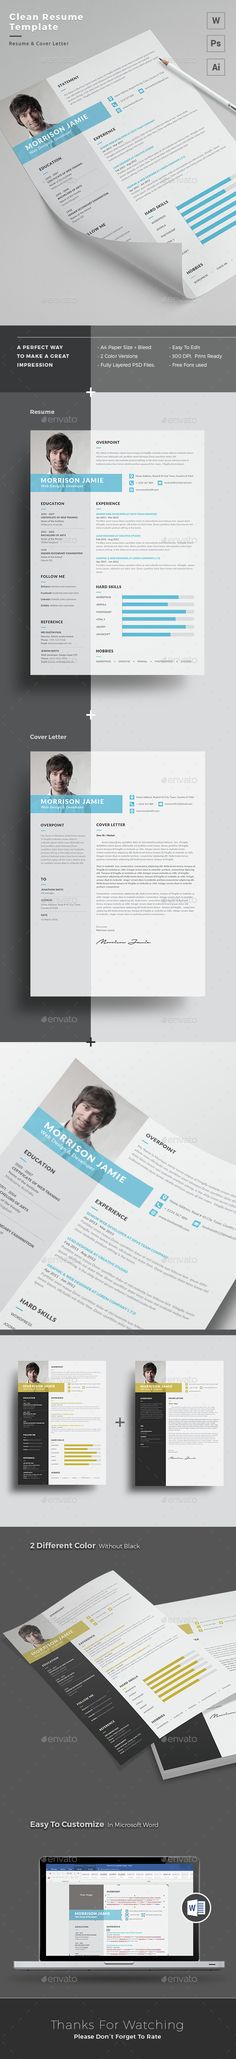 Resume u0026 Cover Letter Pinterest